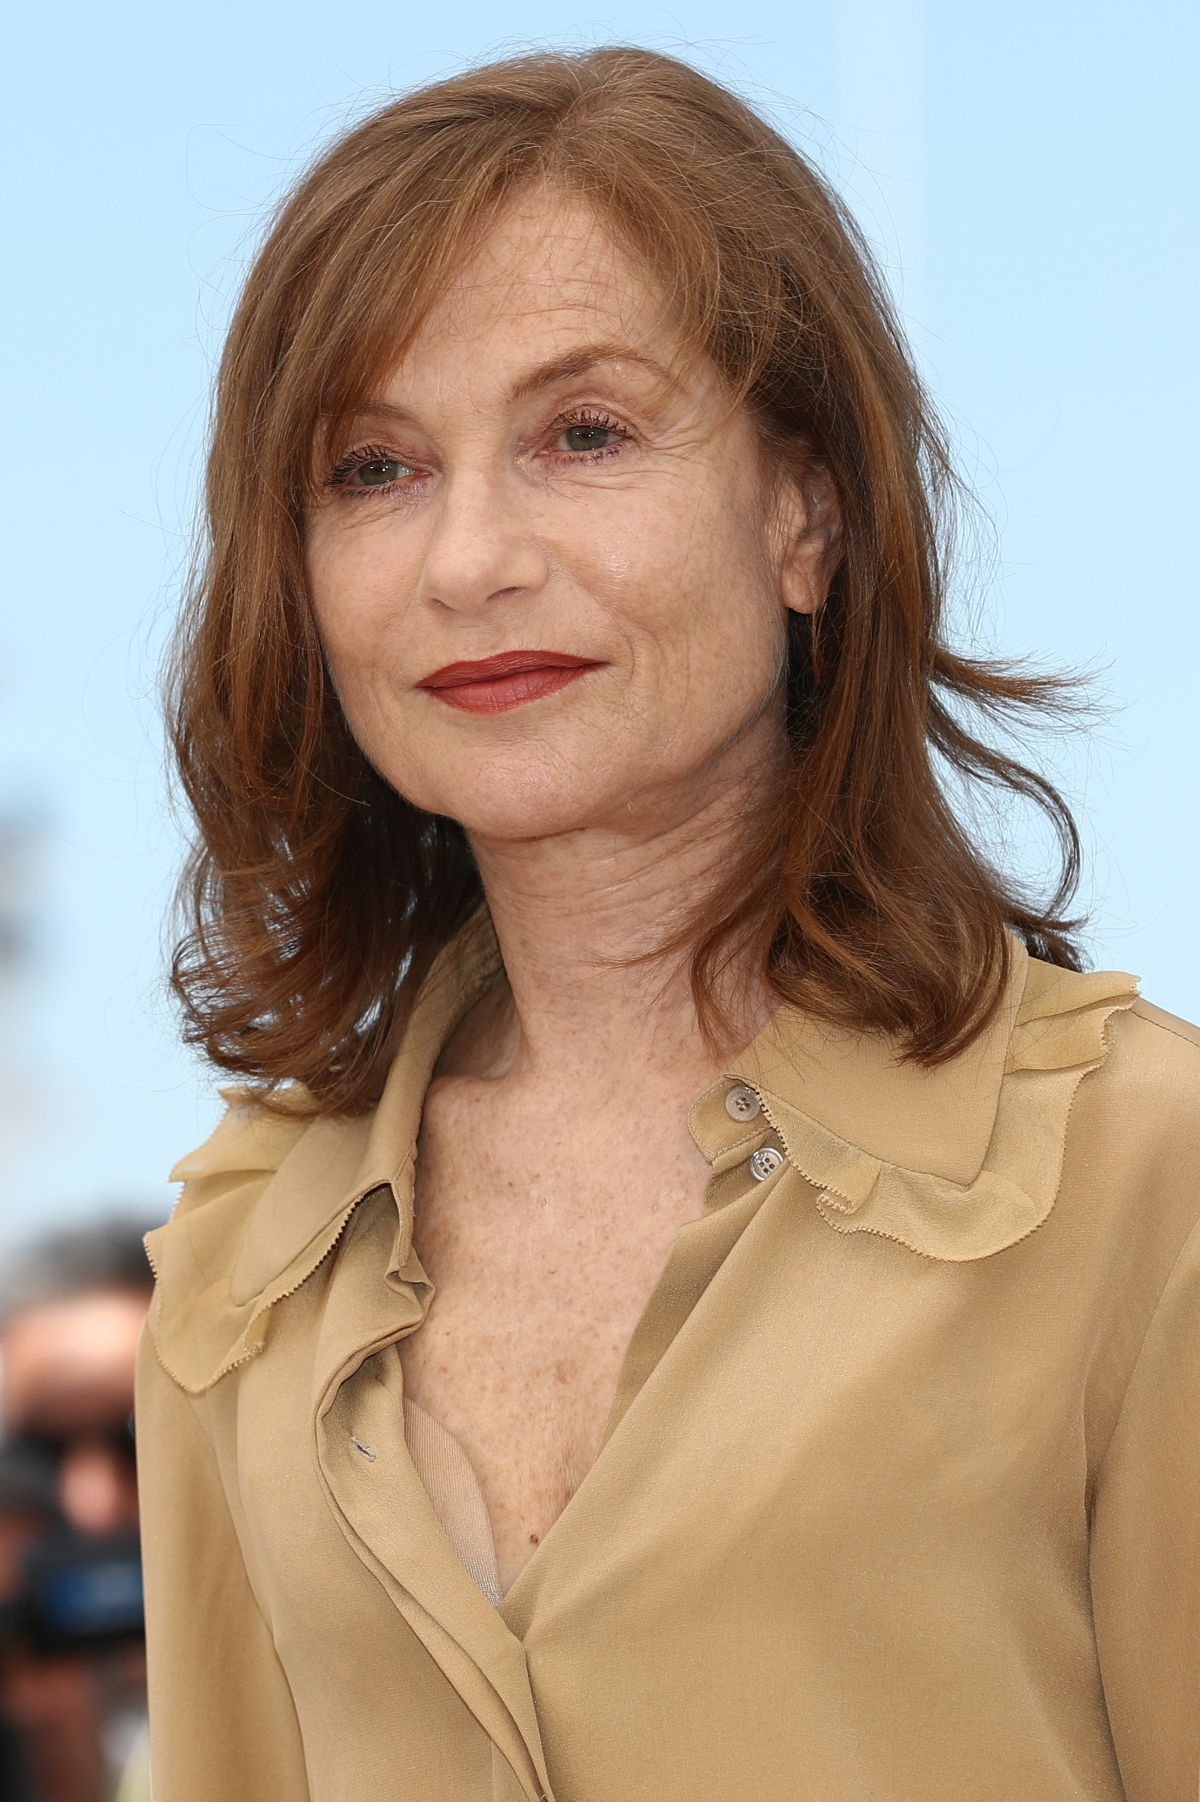 ISABELLE HUPPERT at Westminster Hotel in Paris 01/30/2017